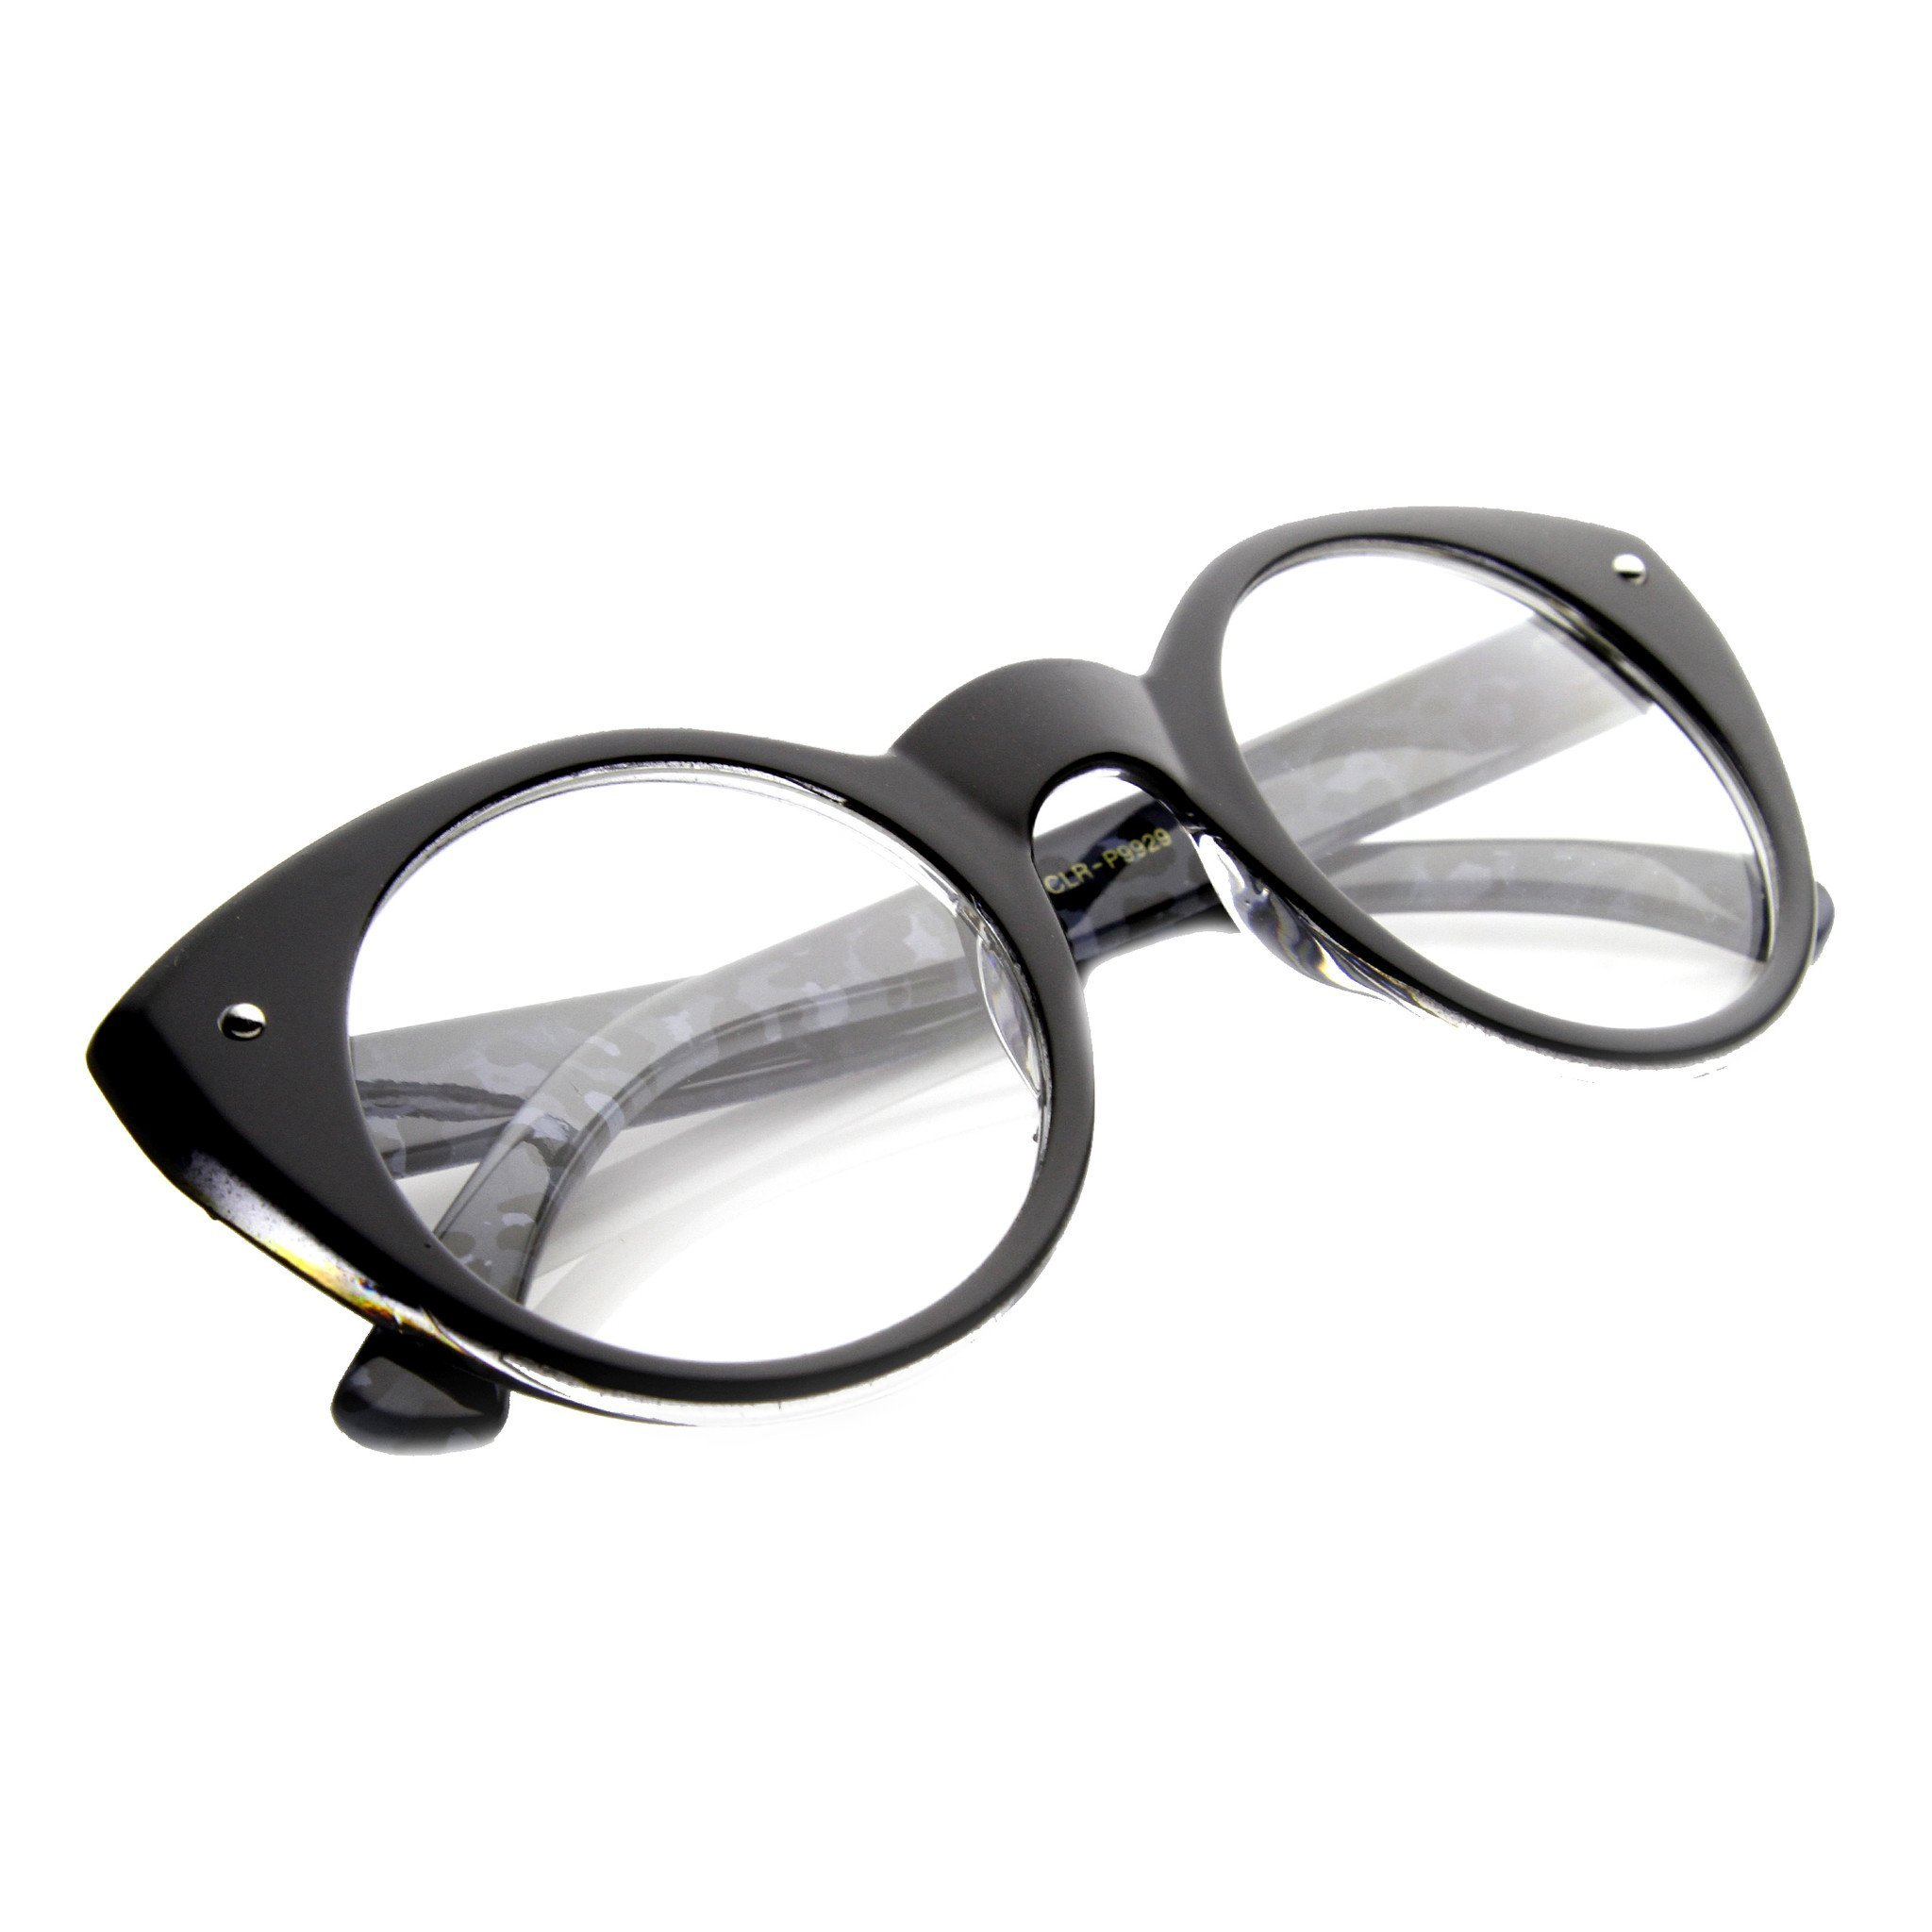 f92bf7fde56c Cute Retro Animal Print Round Cat Eye Clear Lens Glasses 9647.  9.99 from  zeroUV